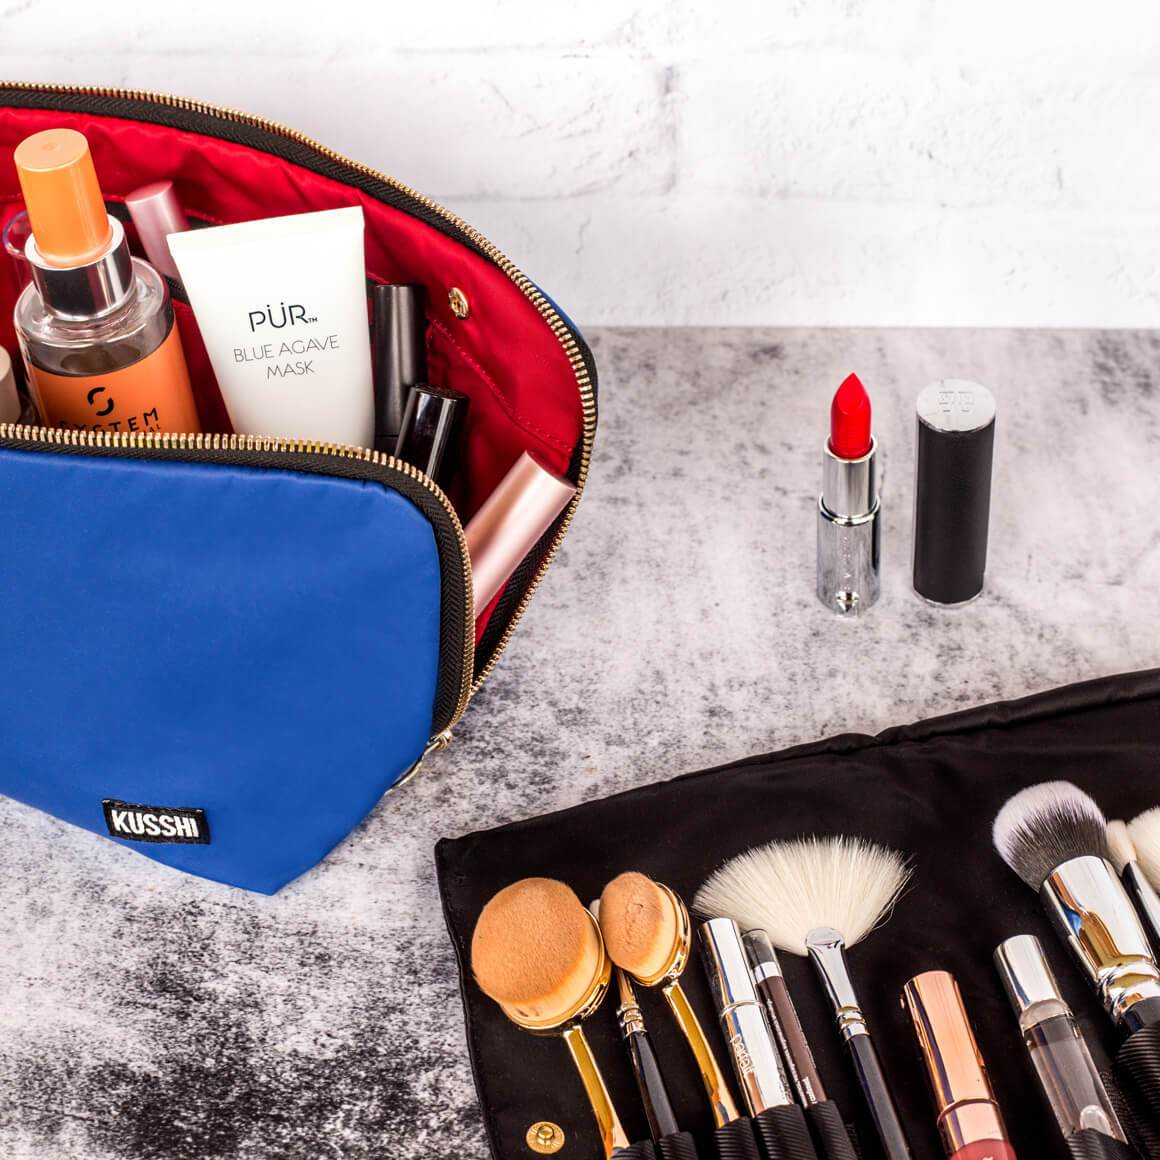 998c980518c77b The Best Makeup Bags to Organize Your Cosmetics - Kusshi